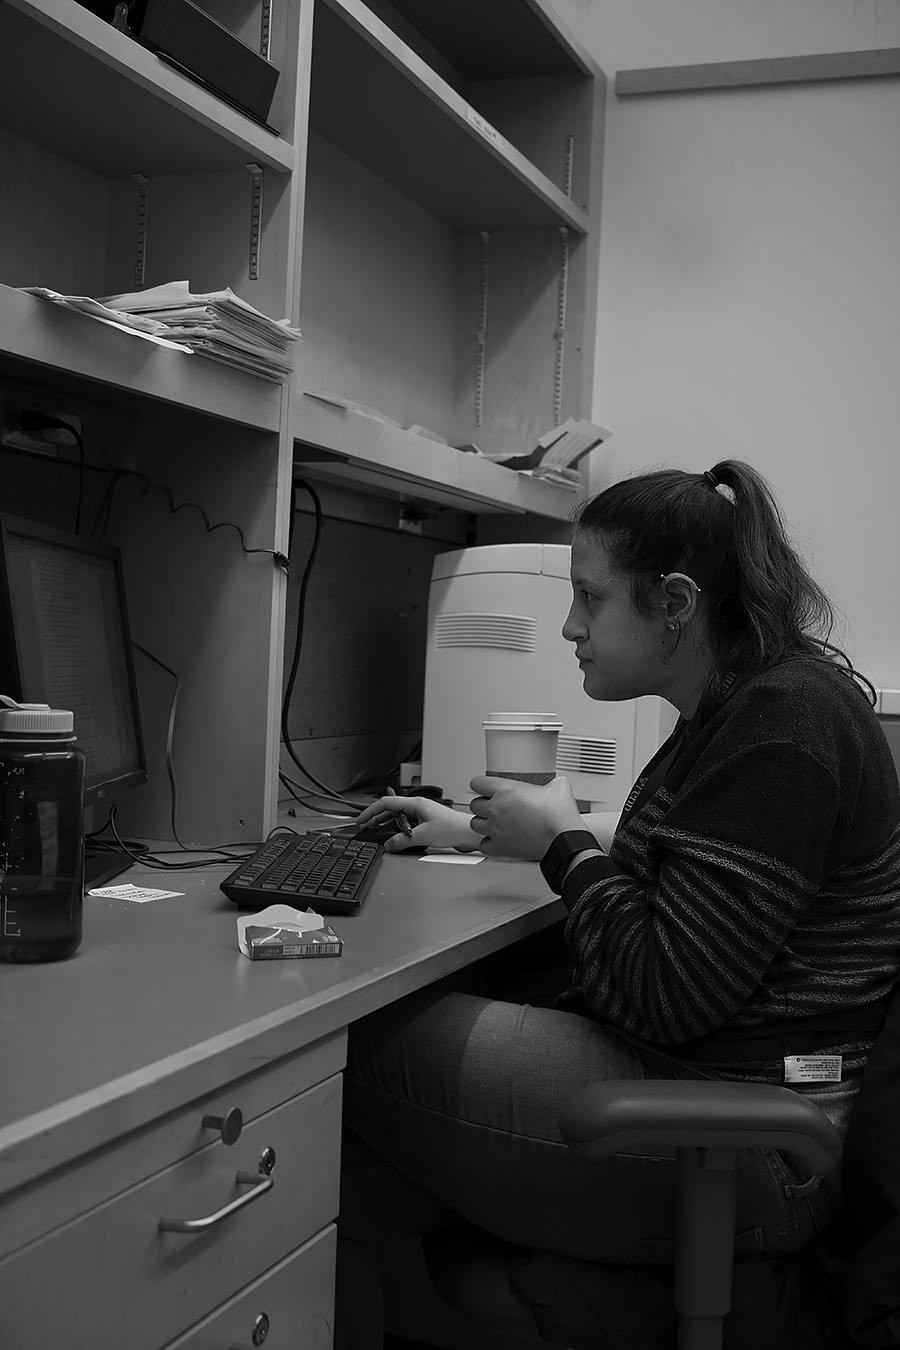 Tyler_Ling_photography_laboratory_computers_working_determined_absorbed_coffee_student_Penn_sideshot_unaware_black_white